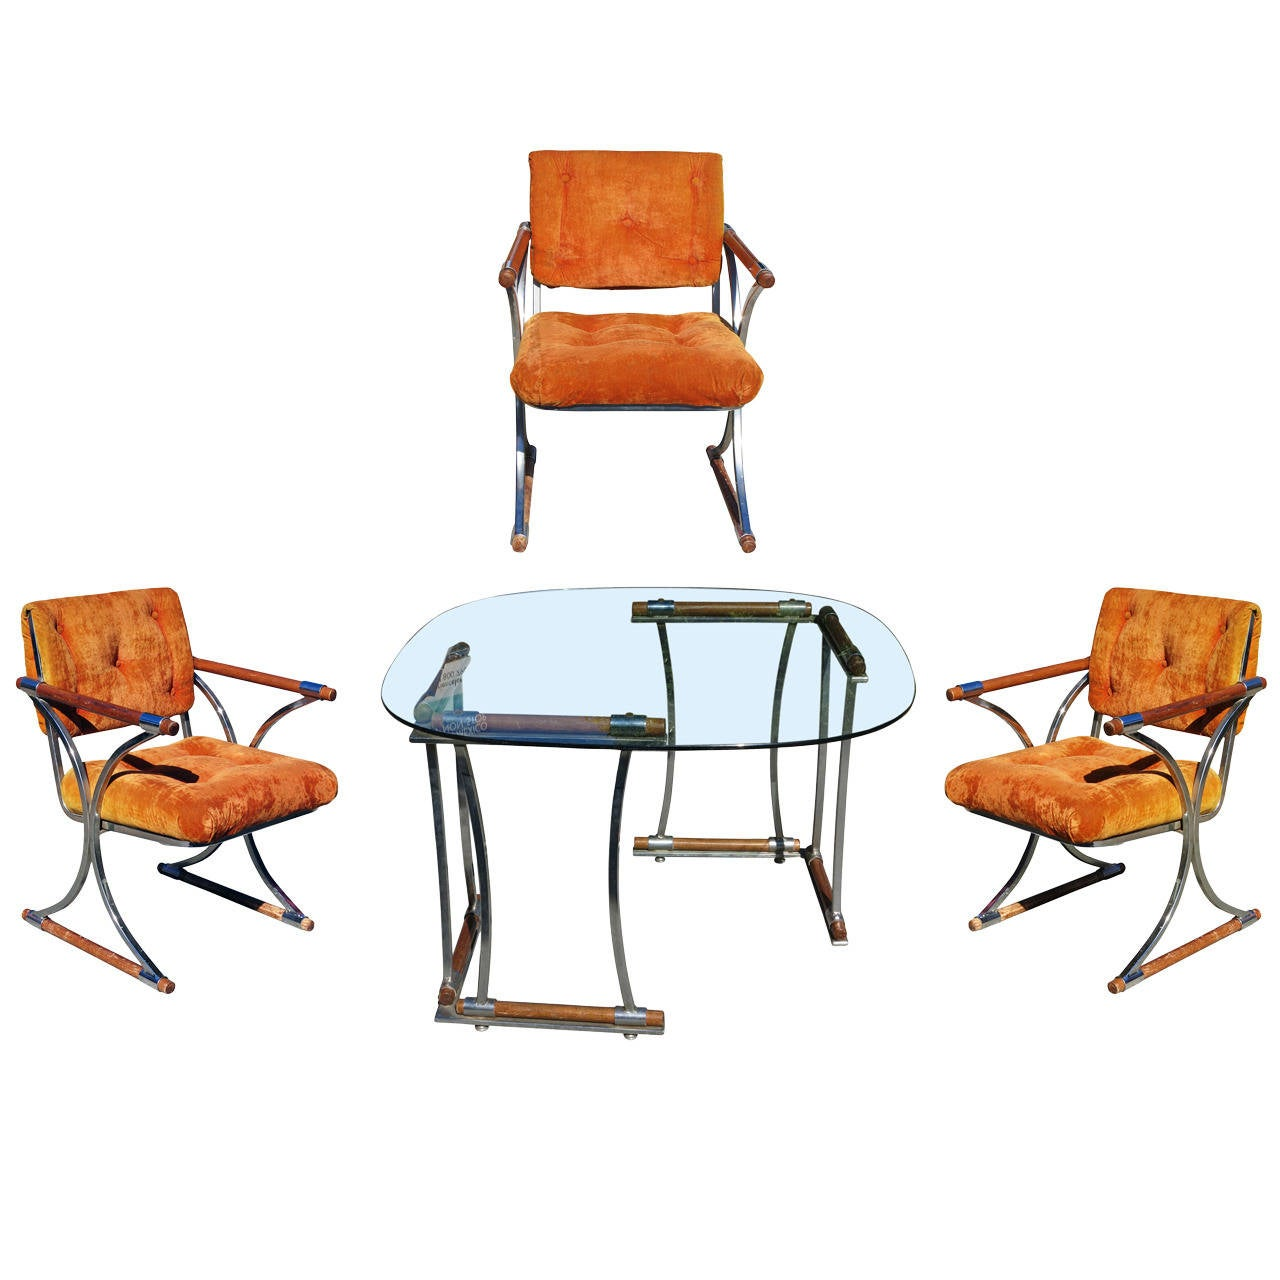 Set of Three Chrome Dining Chairs and Dining Table Set by  : 2235602l from 1stdibs.com size 1280 x 1280 jpeg 125kB